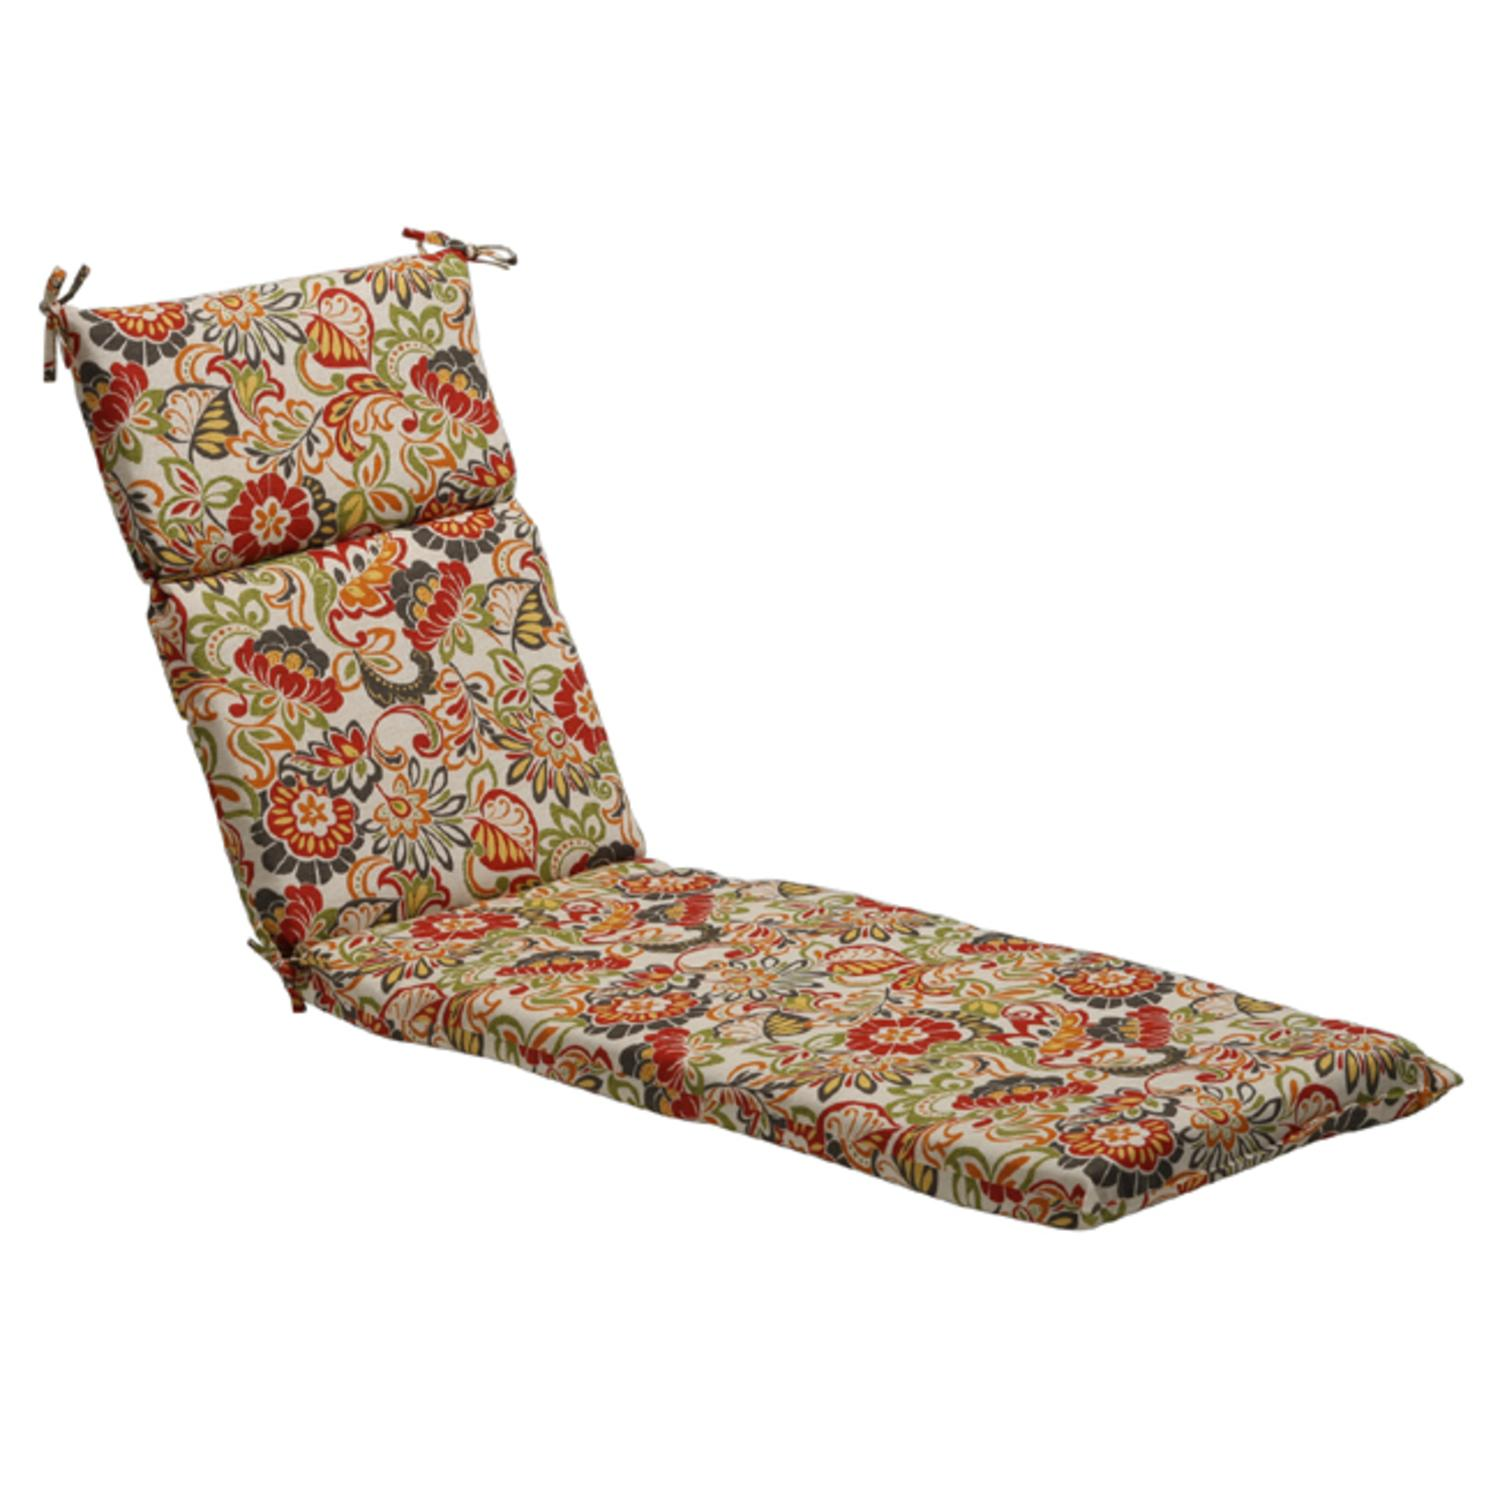 """72.5"""" Eco-Friendly Red Multi-Colored Retro Floral Outdoor Chaise Lounge Cushion"""